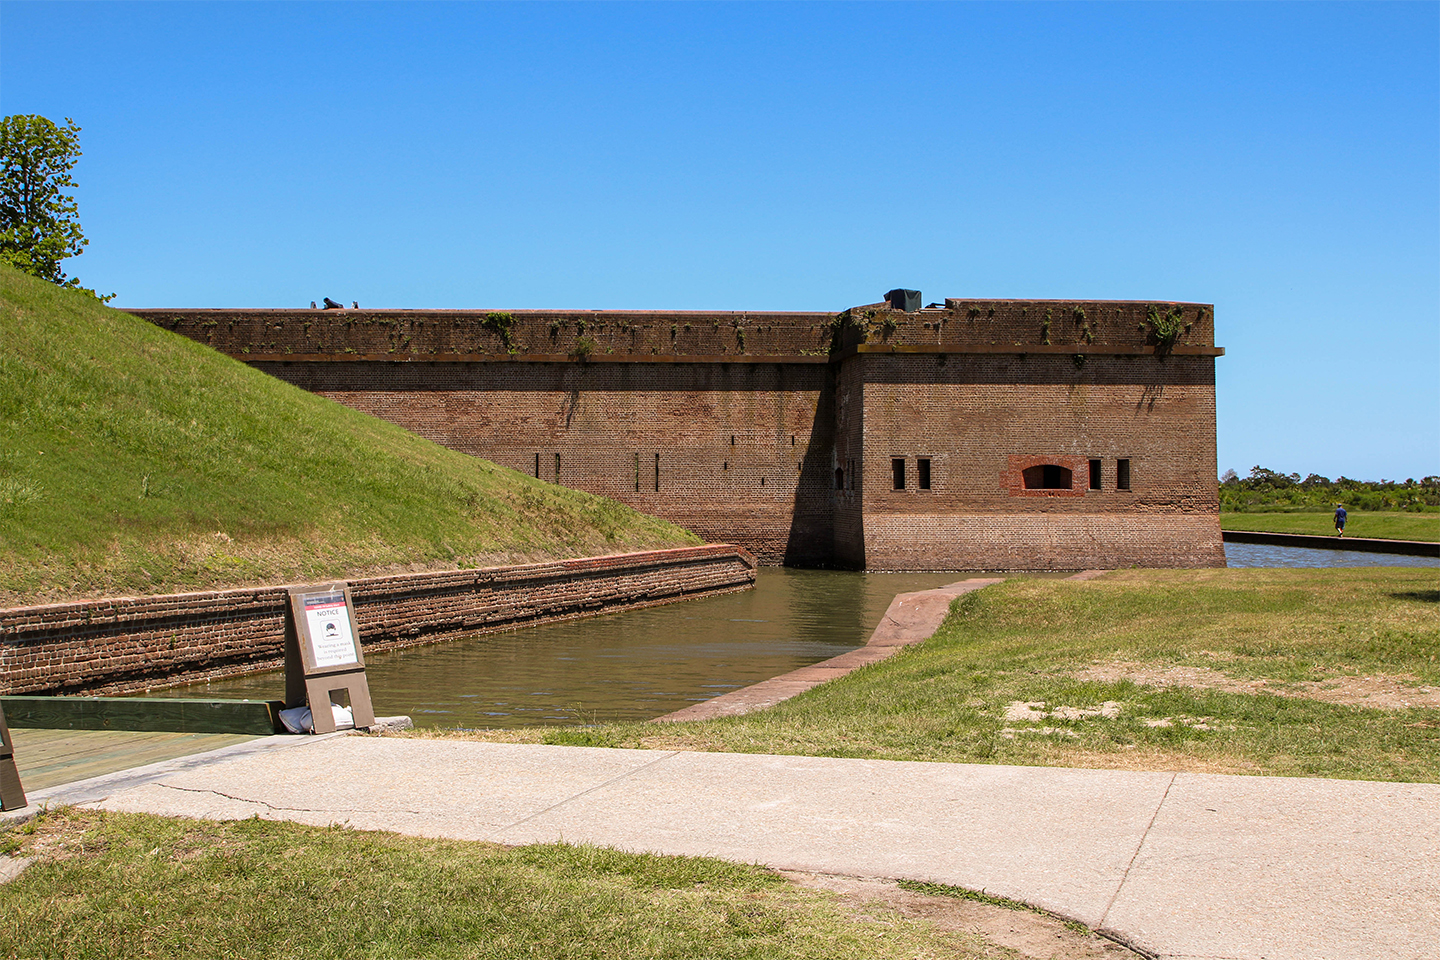 An outside wall of Fort Pulaski surrounded by a moat.